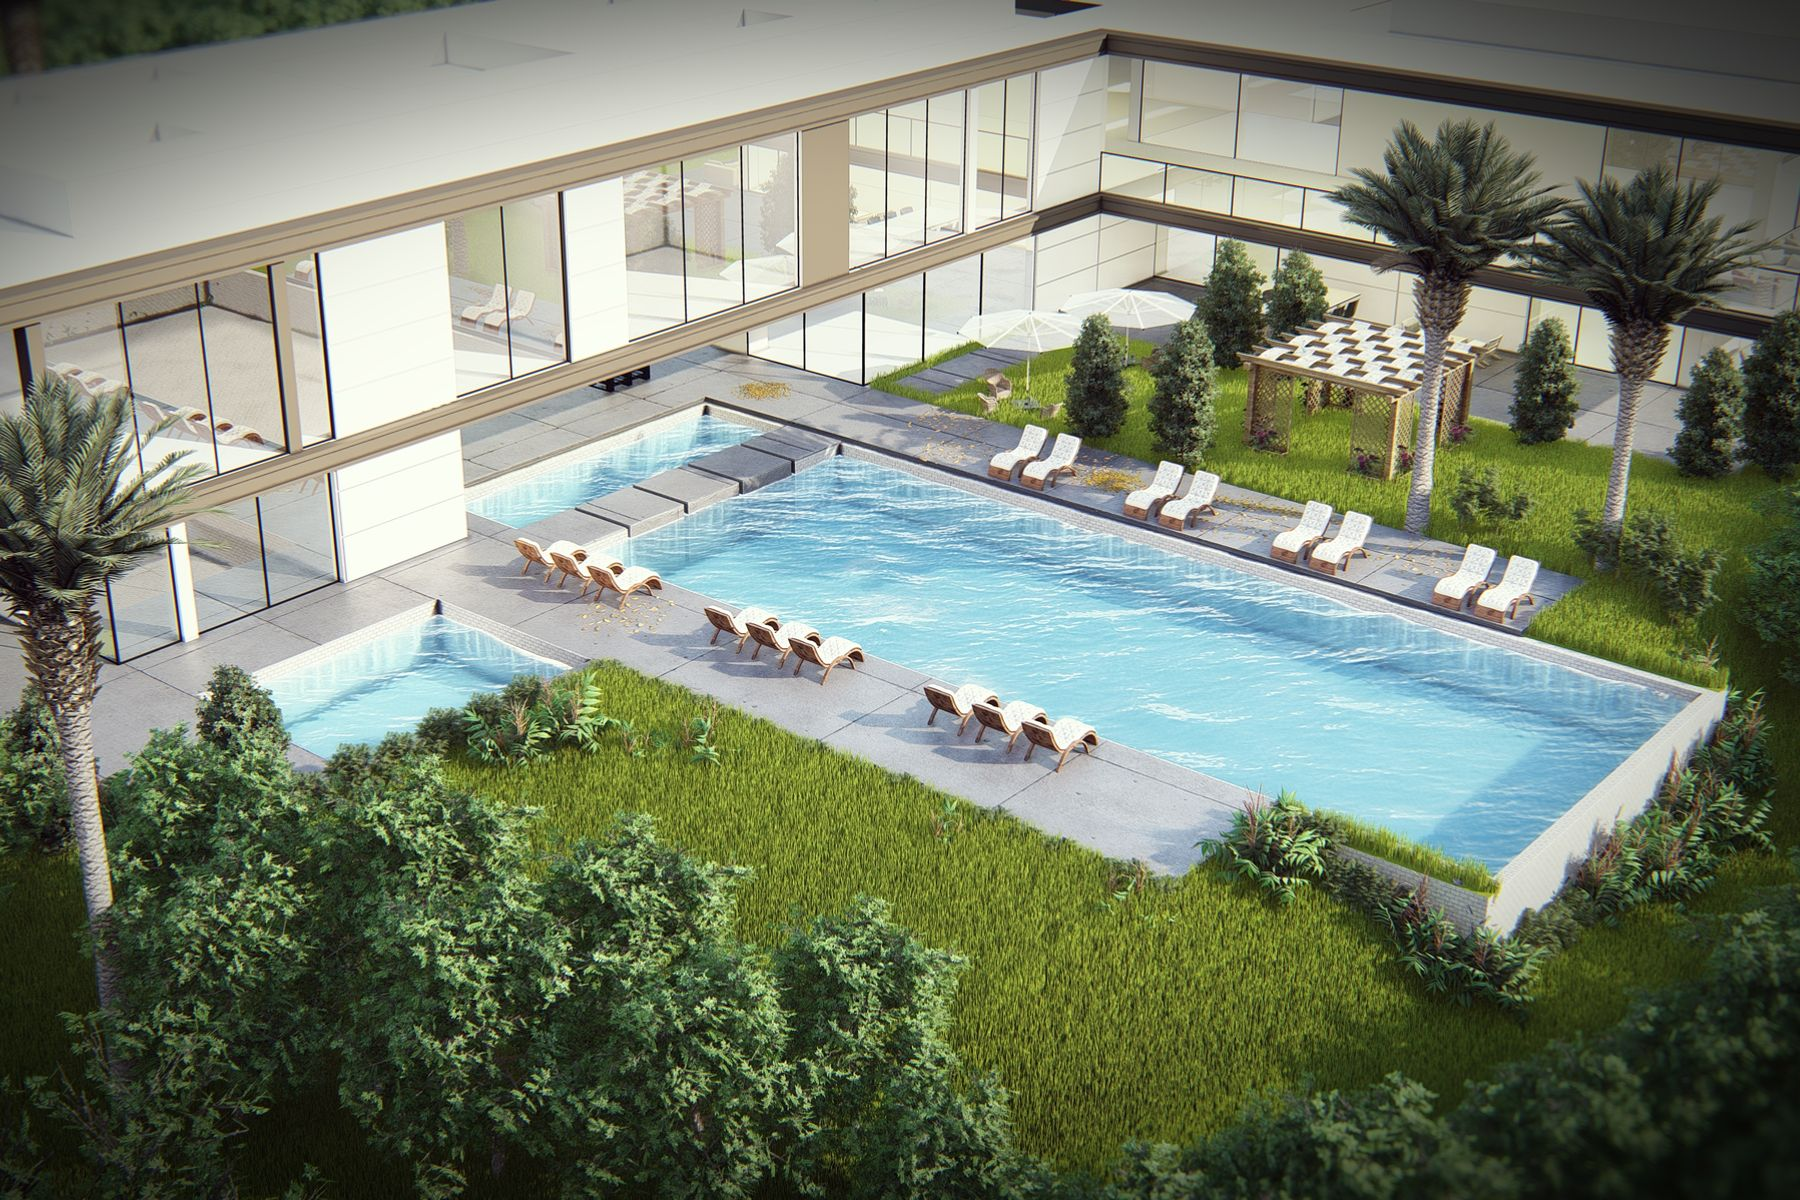 Additional photo for property listing at A World Class Design 16 Beverly Park 比佛利山庄, 加利福尼亚州 90210 美国